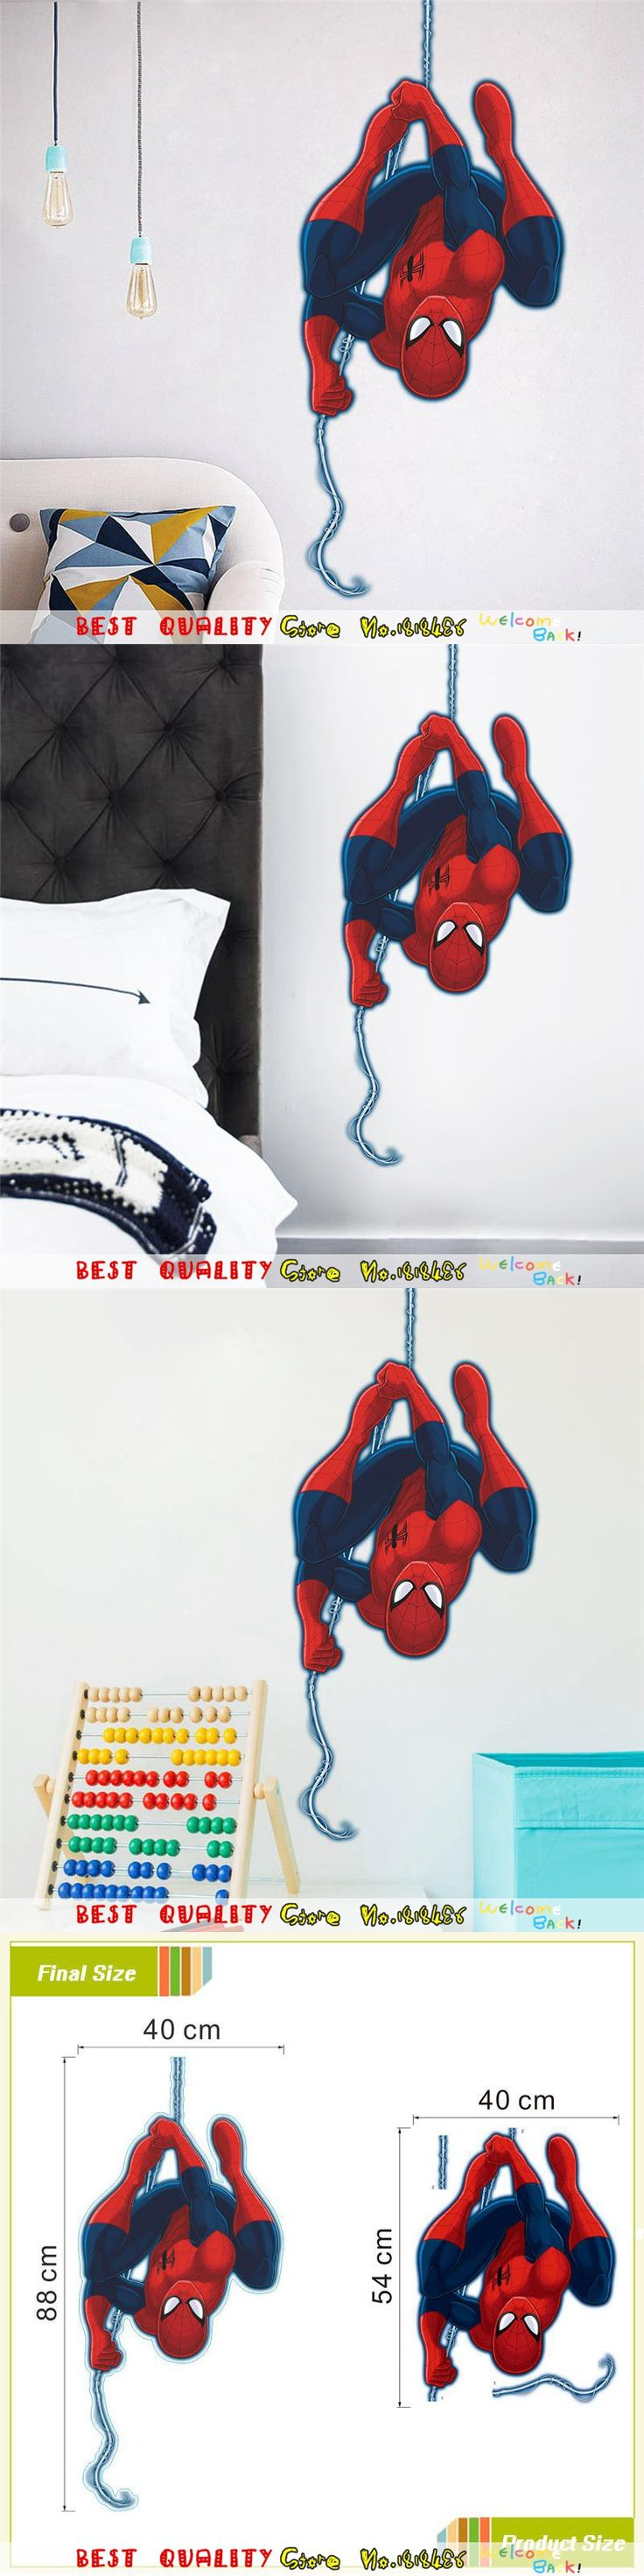 Hot Sale Spiderman Wall Sticker Marvel SuperHero Wall Decal Paper Craft  Kids Bedroom Decor Christmas Gifts Part 50